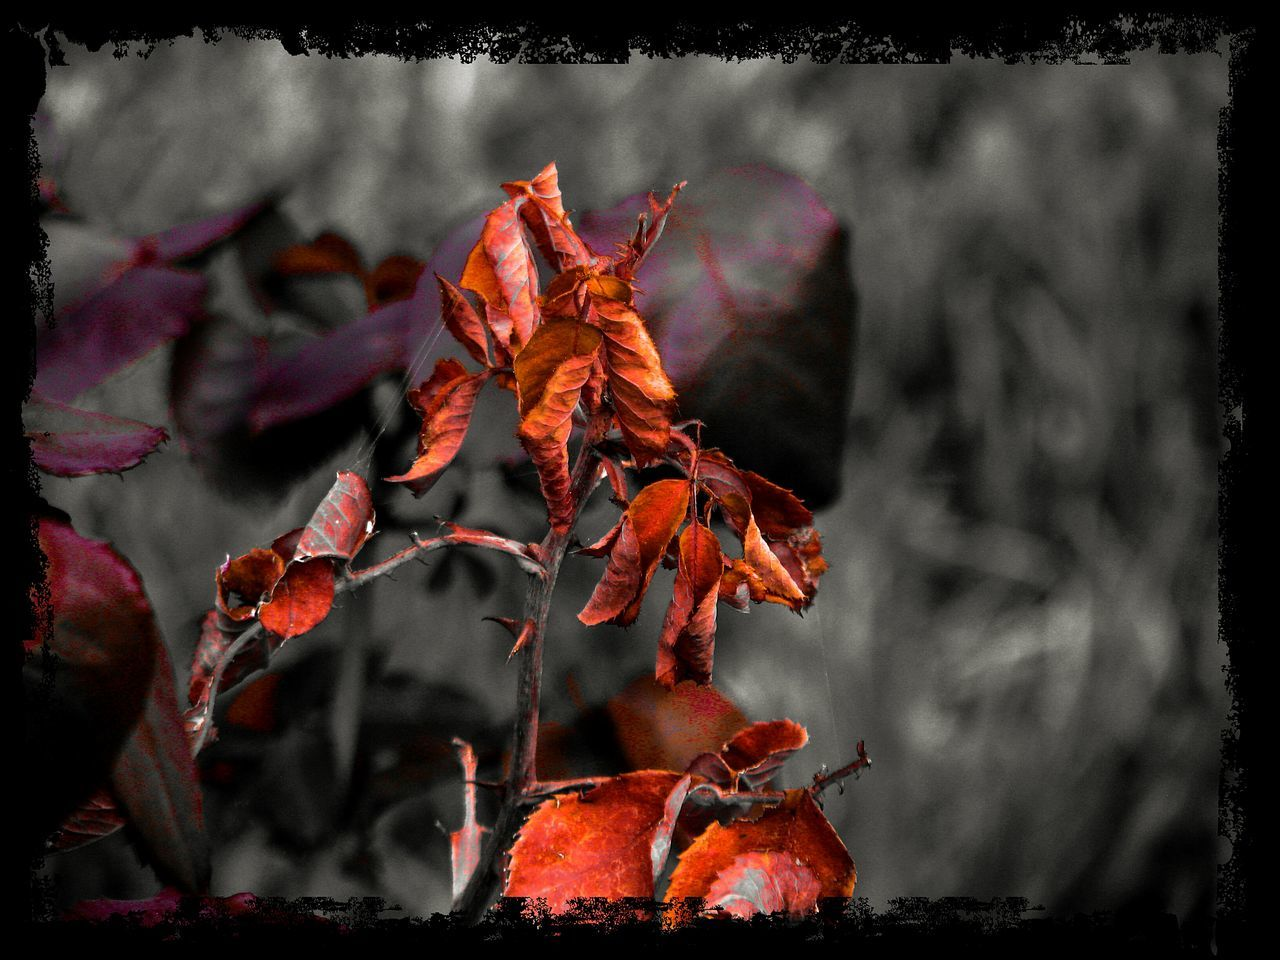 Red Leaves Leaves Carmine Nature Beauty In Nature Close-up No People Art Is Everywhere Backgrounds Focus On Foreground Red Red And Black TCPM